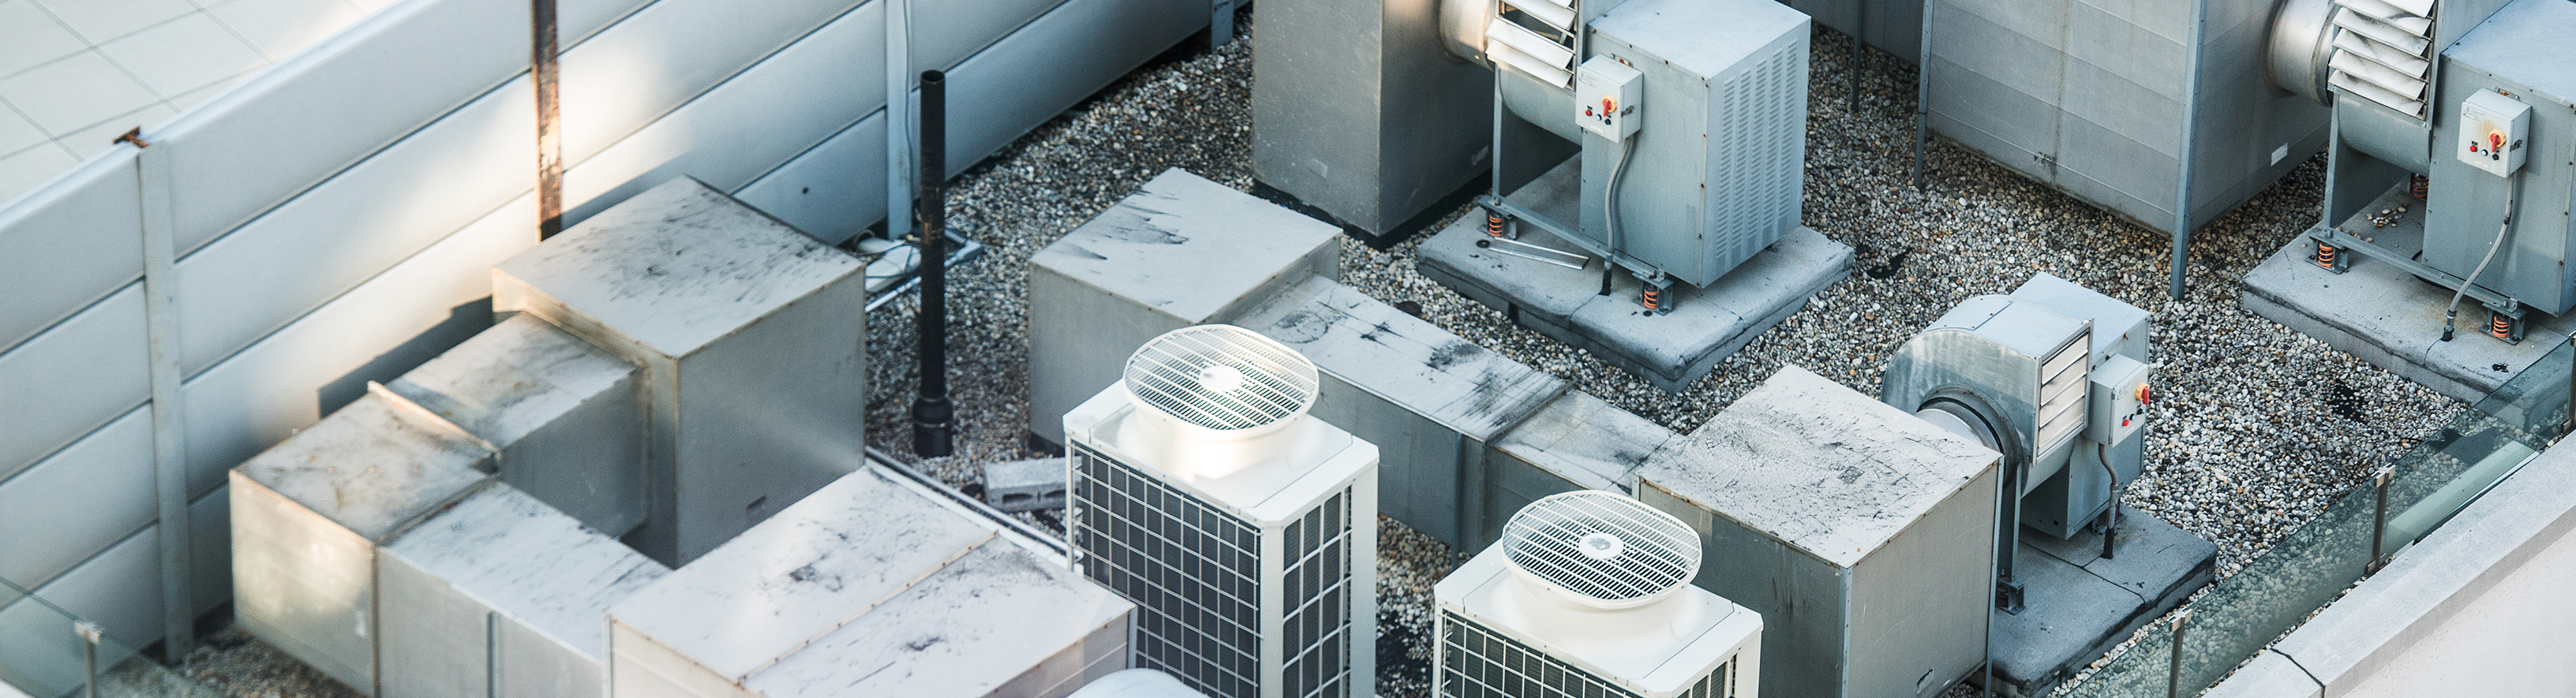 4 Reasons to Upgrade Your Commercial HVAC System